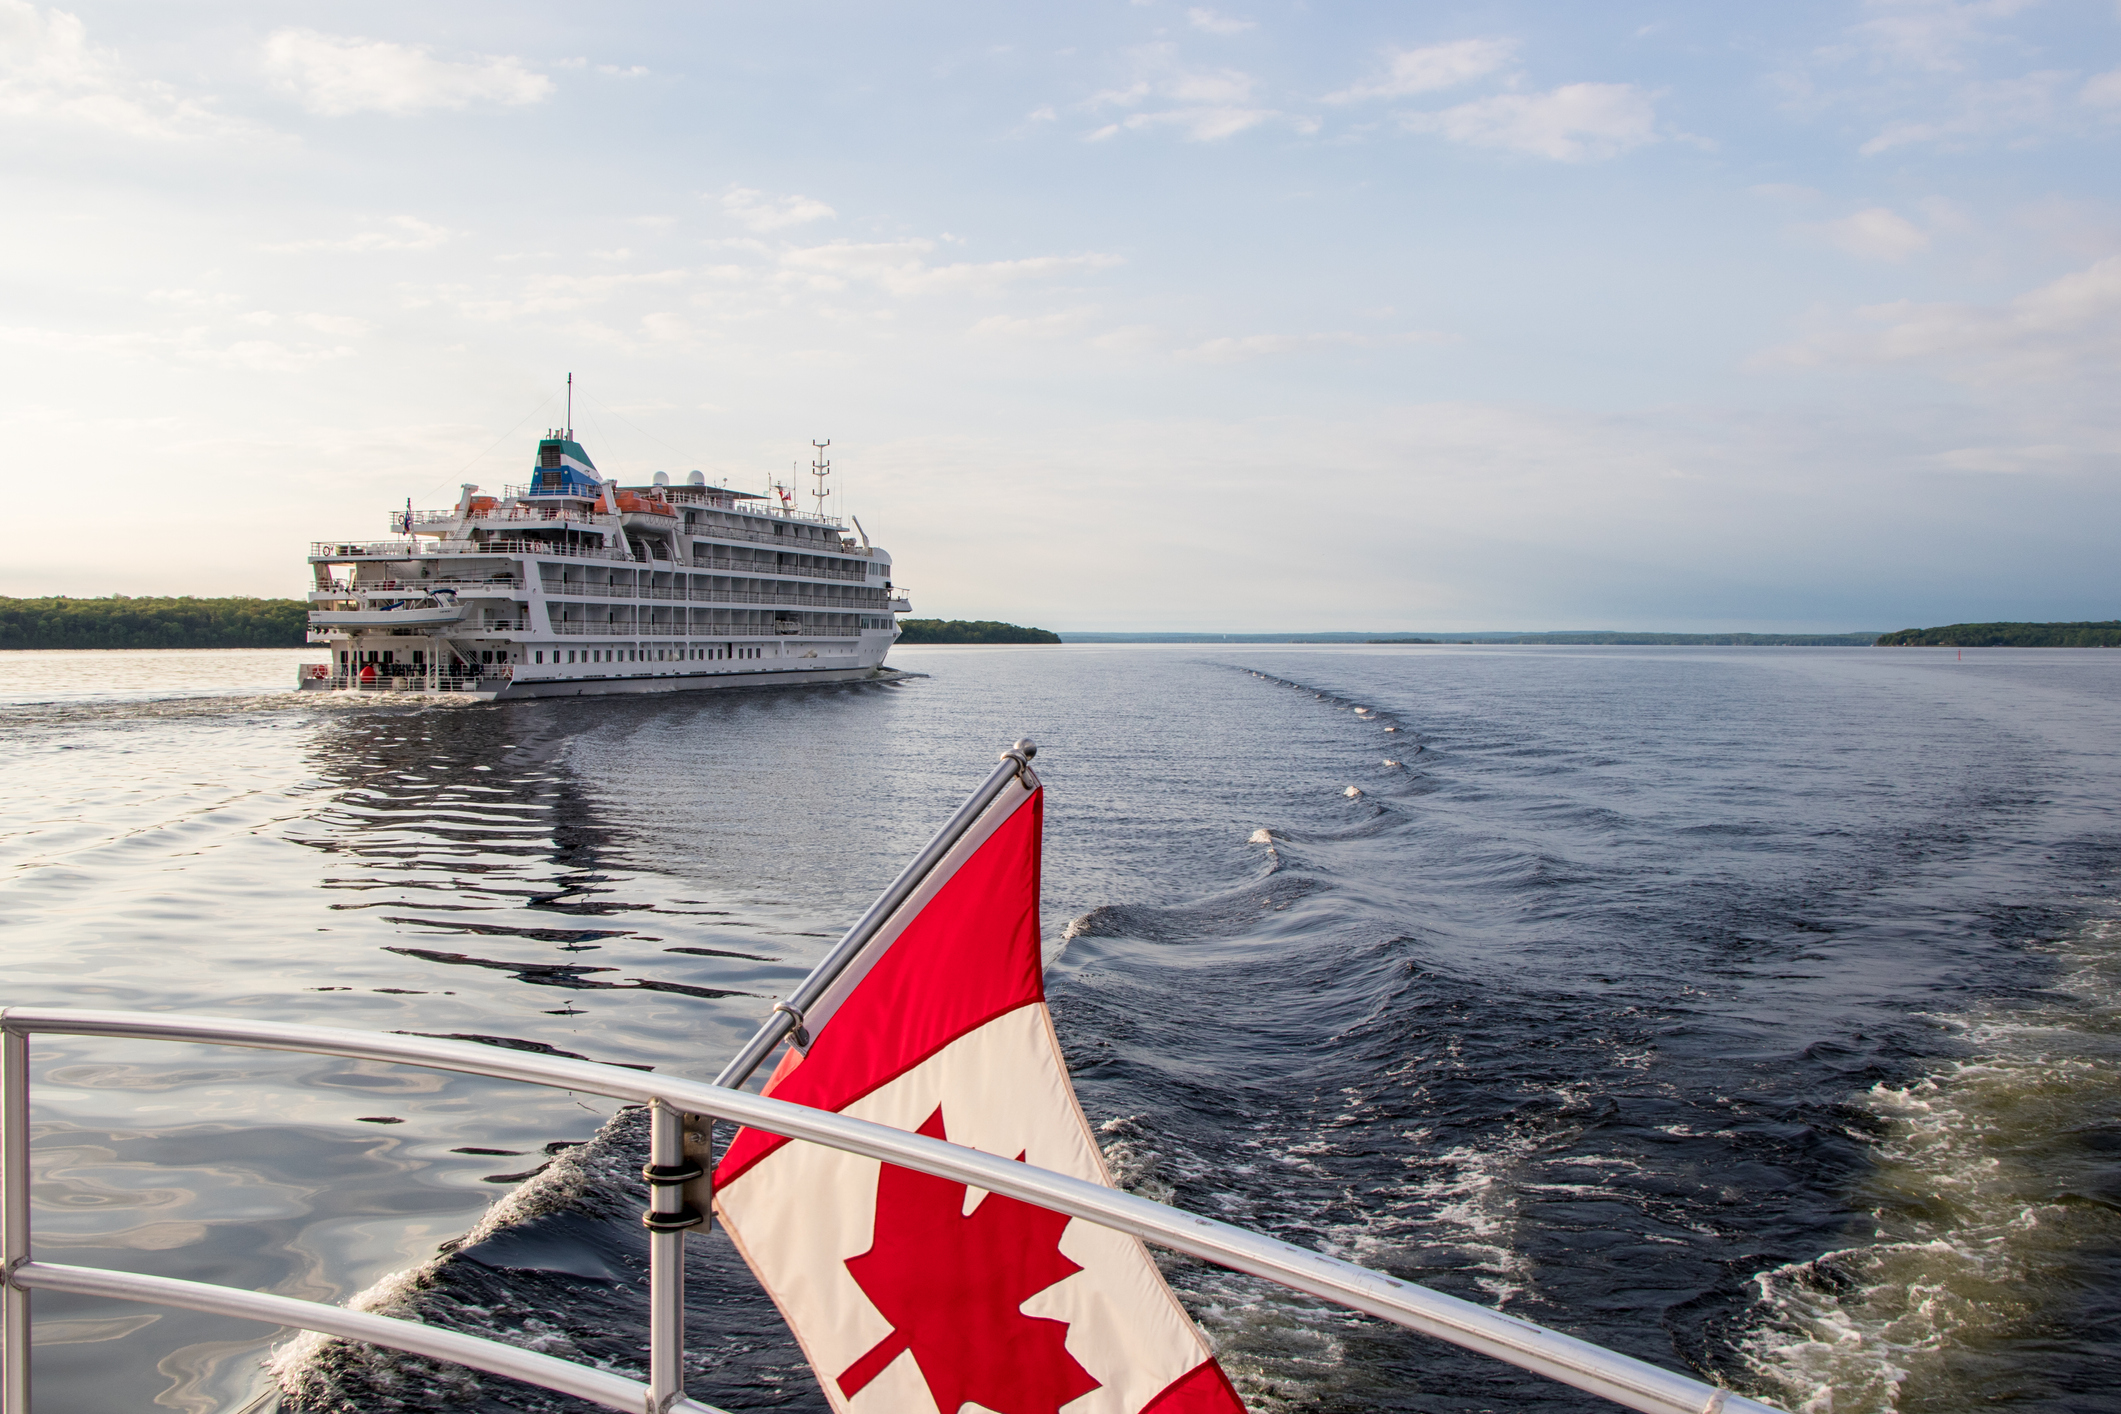 cruise ship from the article Great Lakes cruise operators brace for a rough season thanks to COVID-19